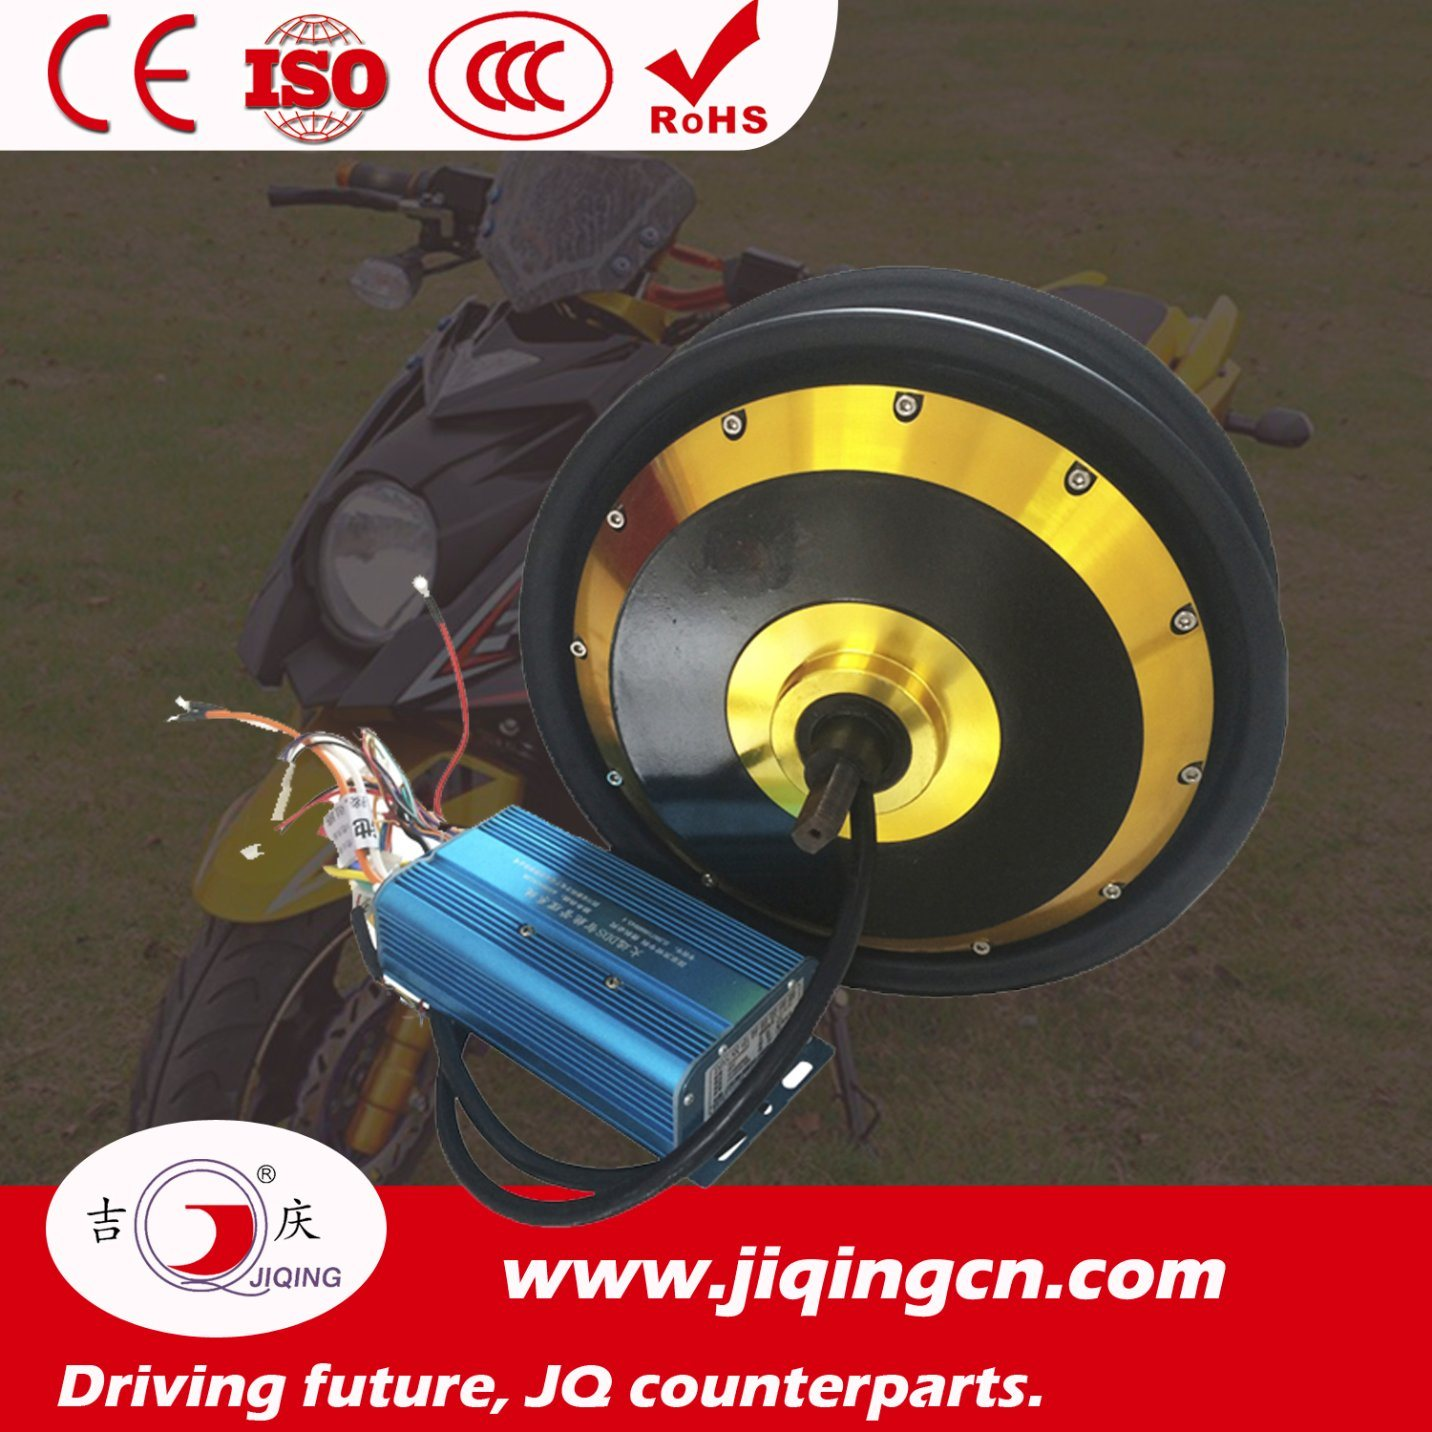 72V 1500 W Hub Motor with RoHS